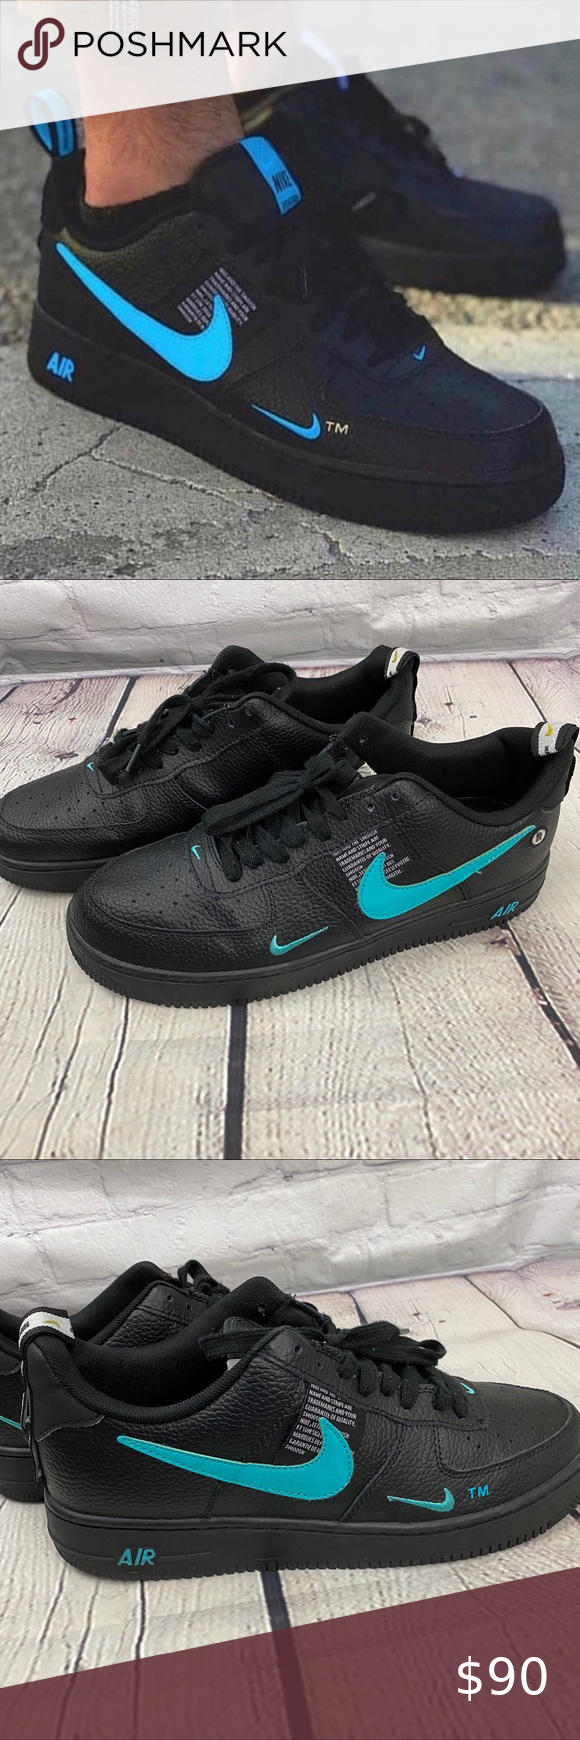 air force 1 low utility black and blue